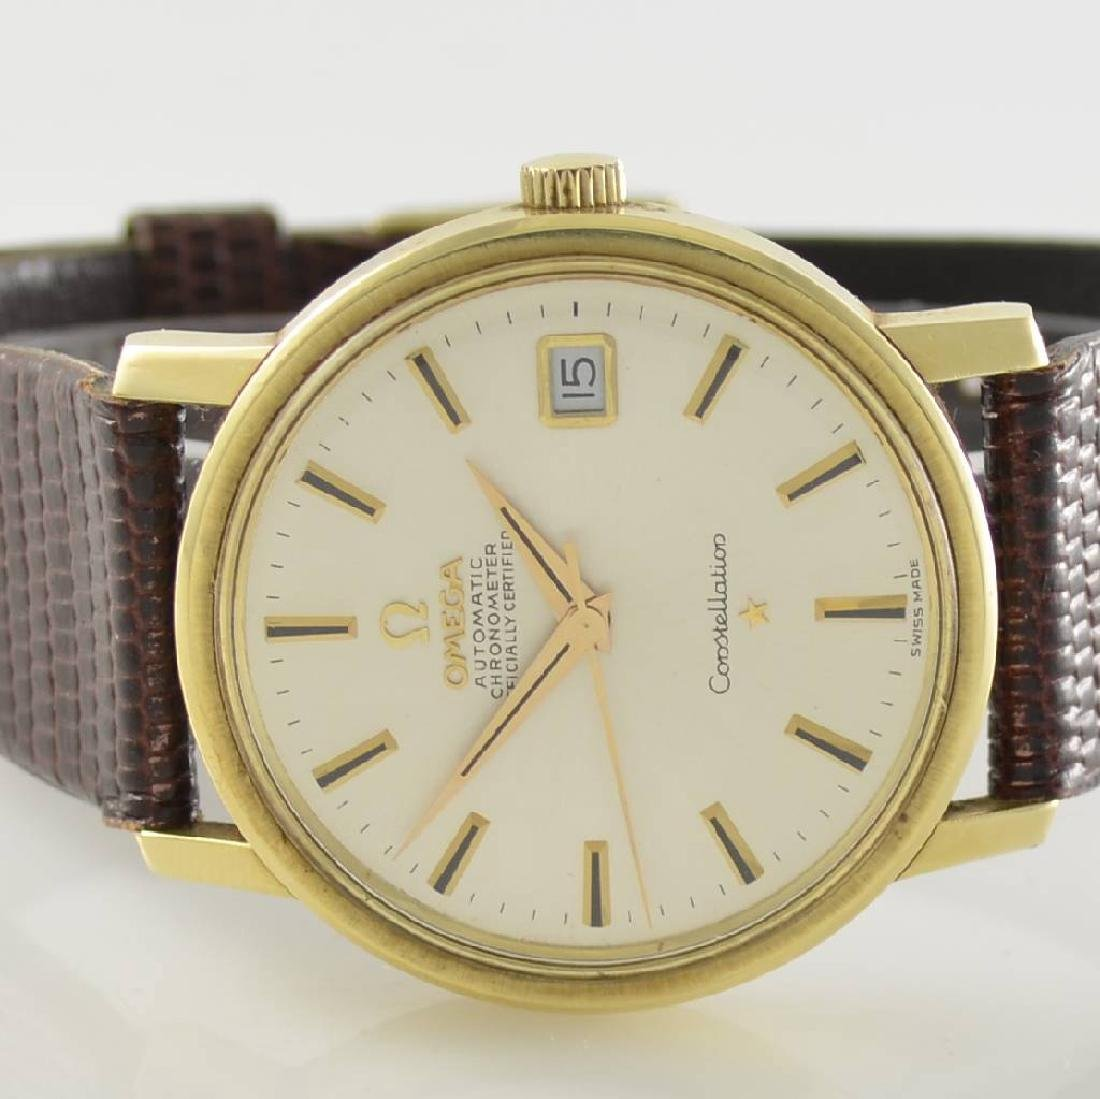 OMEGA Constellation gents wristwatch - 2